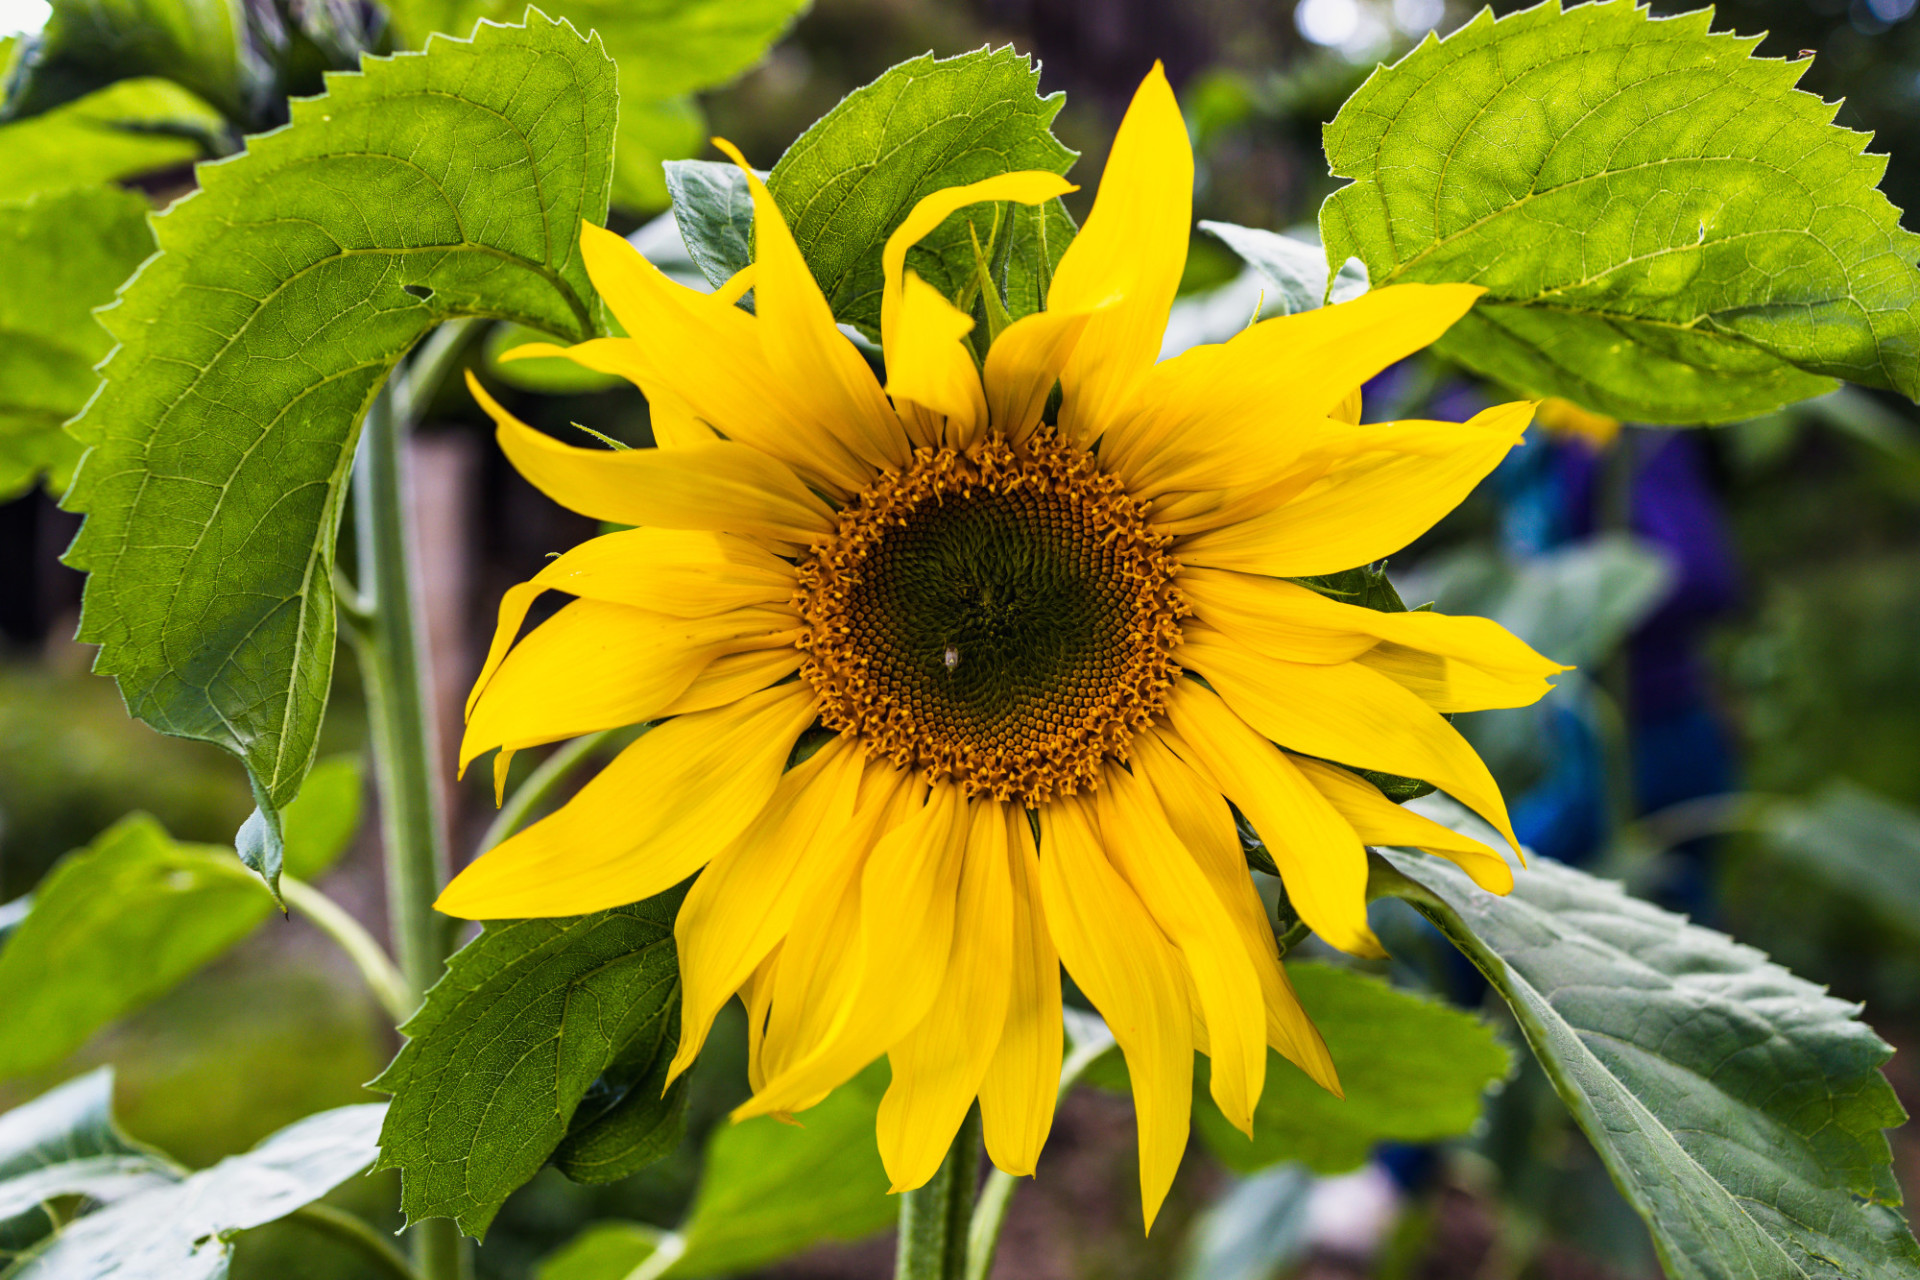 Yellow sunflower in August